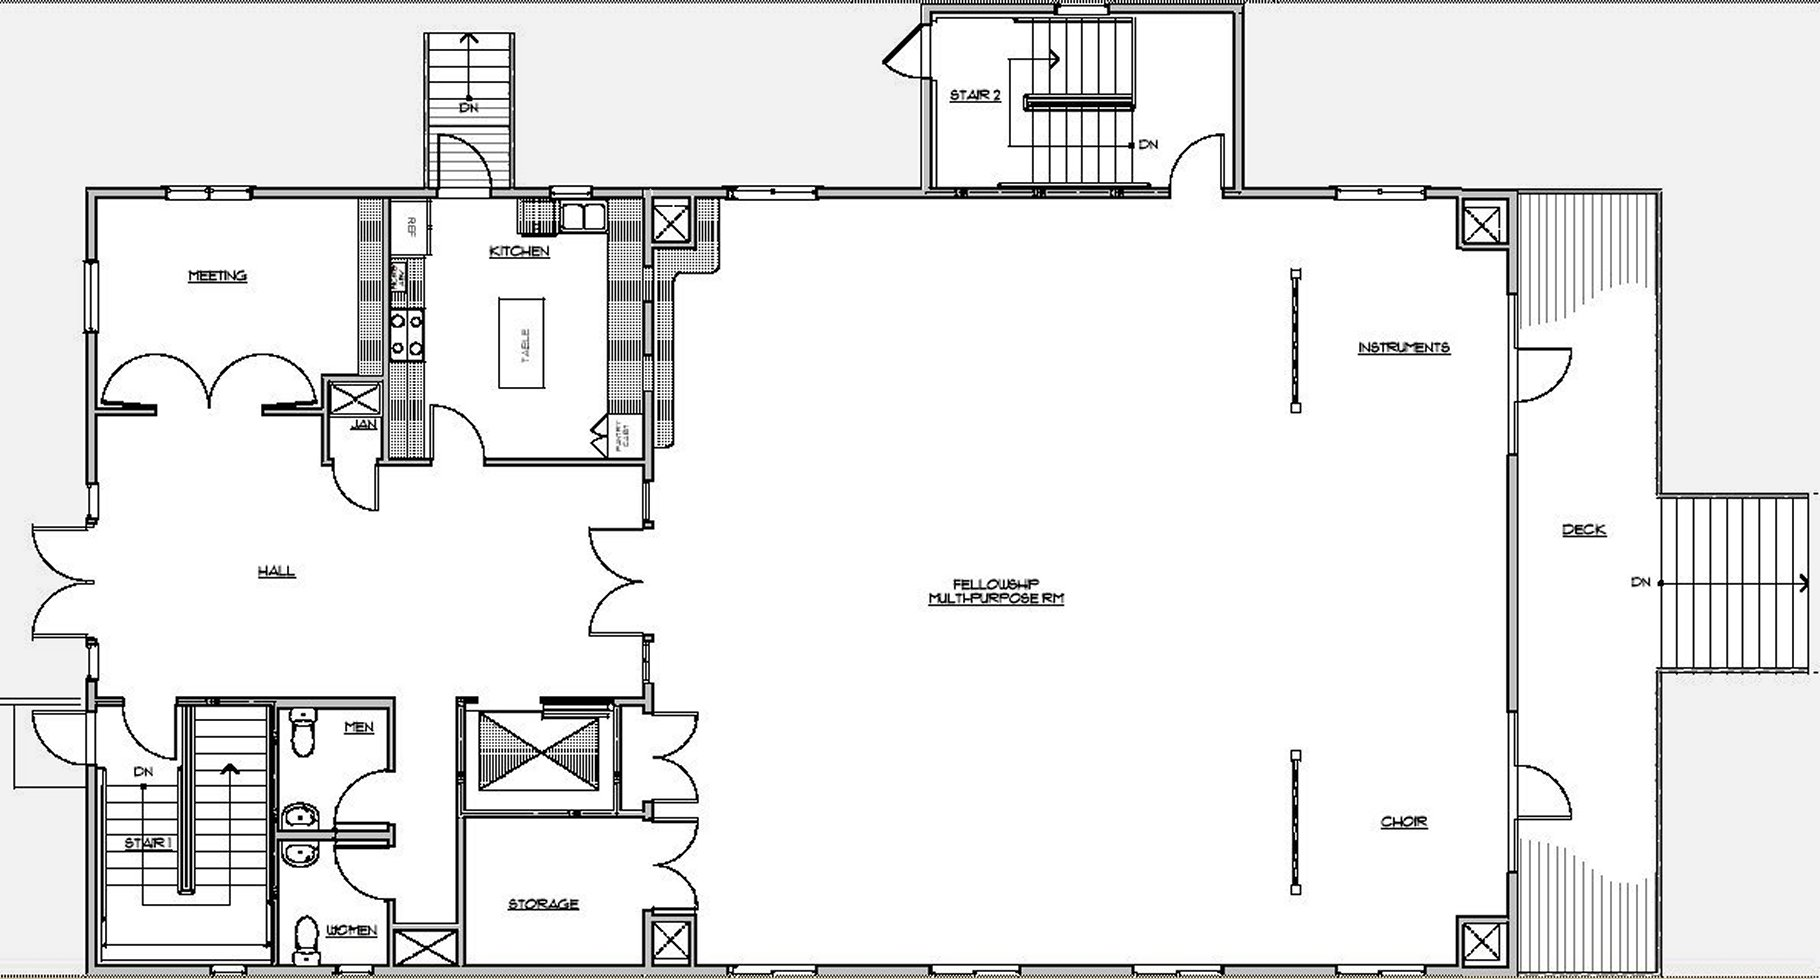 small office building floor plans. Richard Grzywinski, Chair - Updated Floor Plans Small Office Building